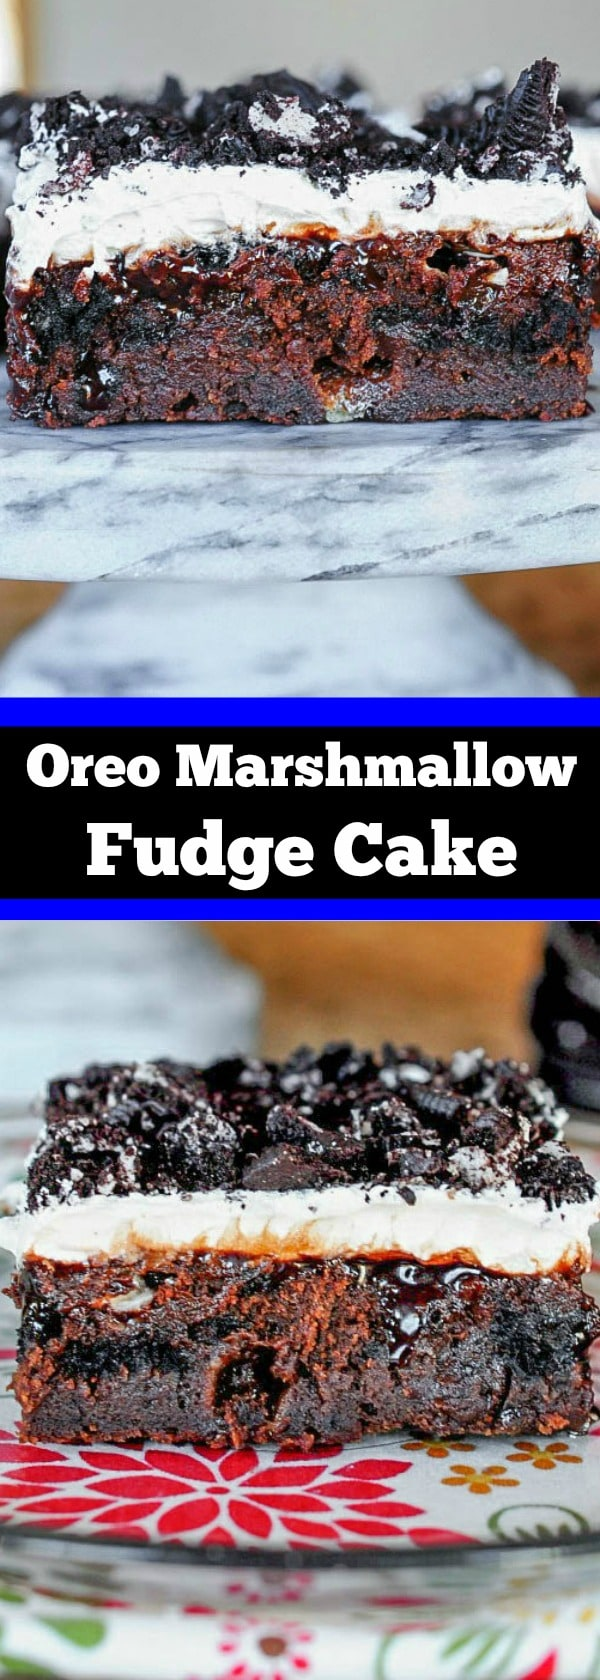 Oreo Marshmallow Fudge Cake - Incredibly delicious with a secret ingredient!